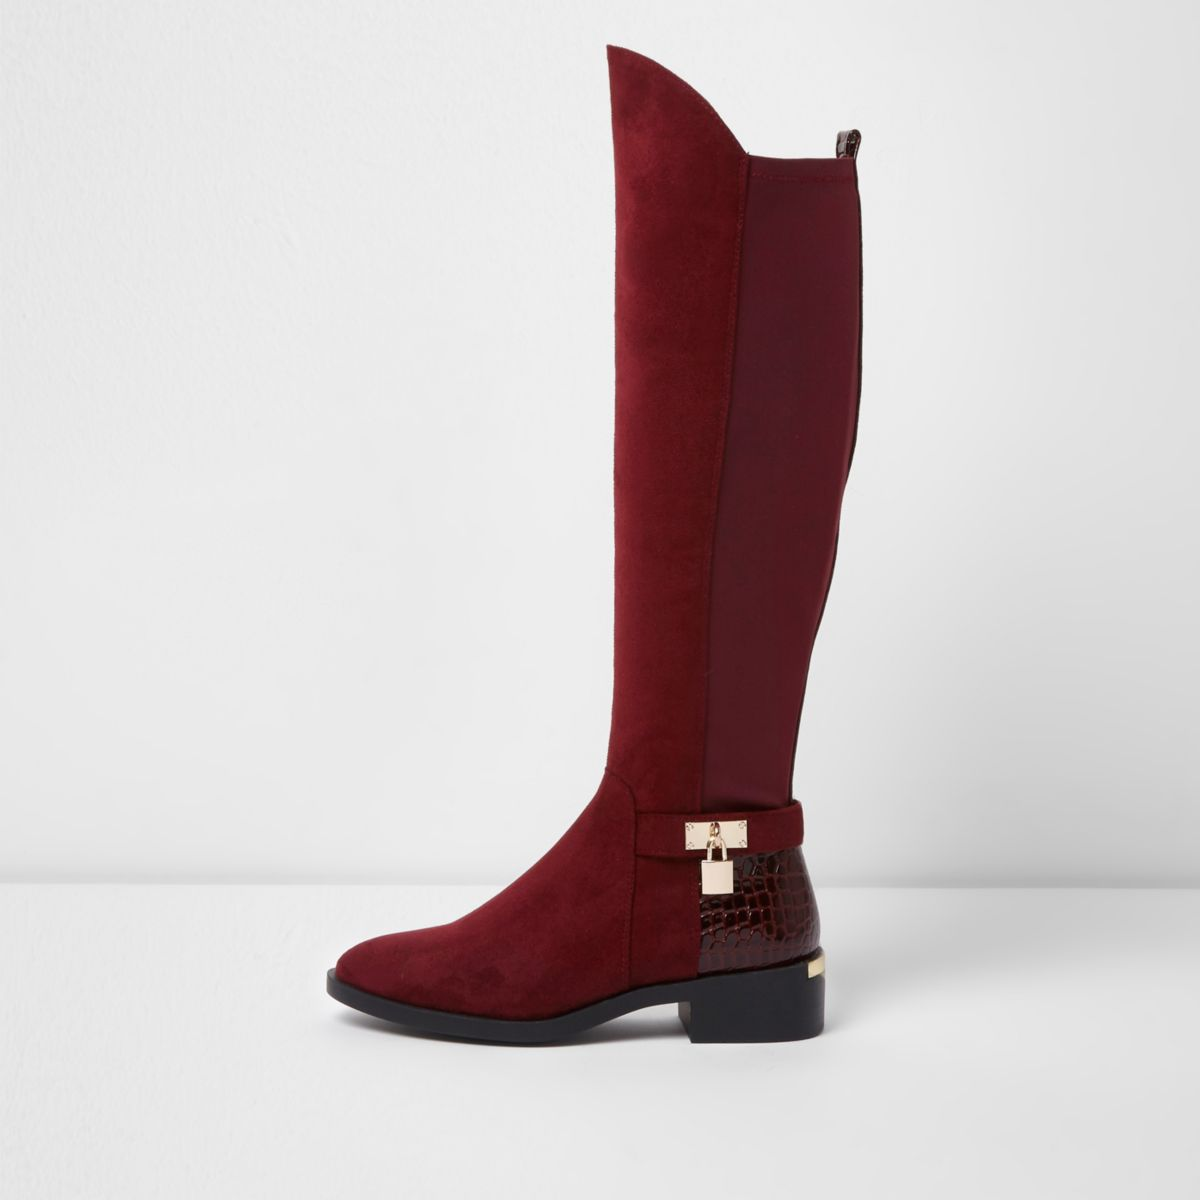 Dark red knee high riding boots